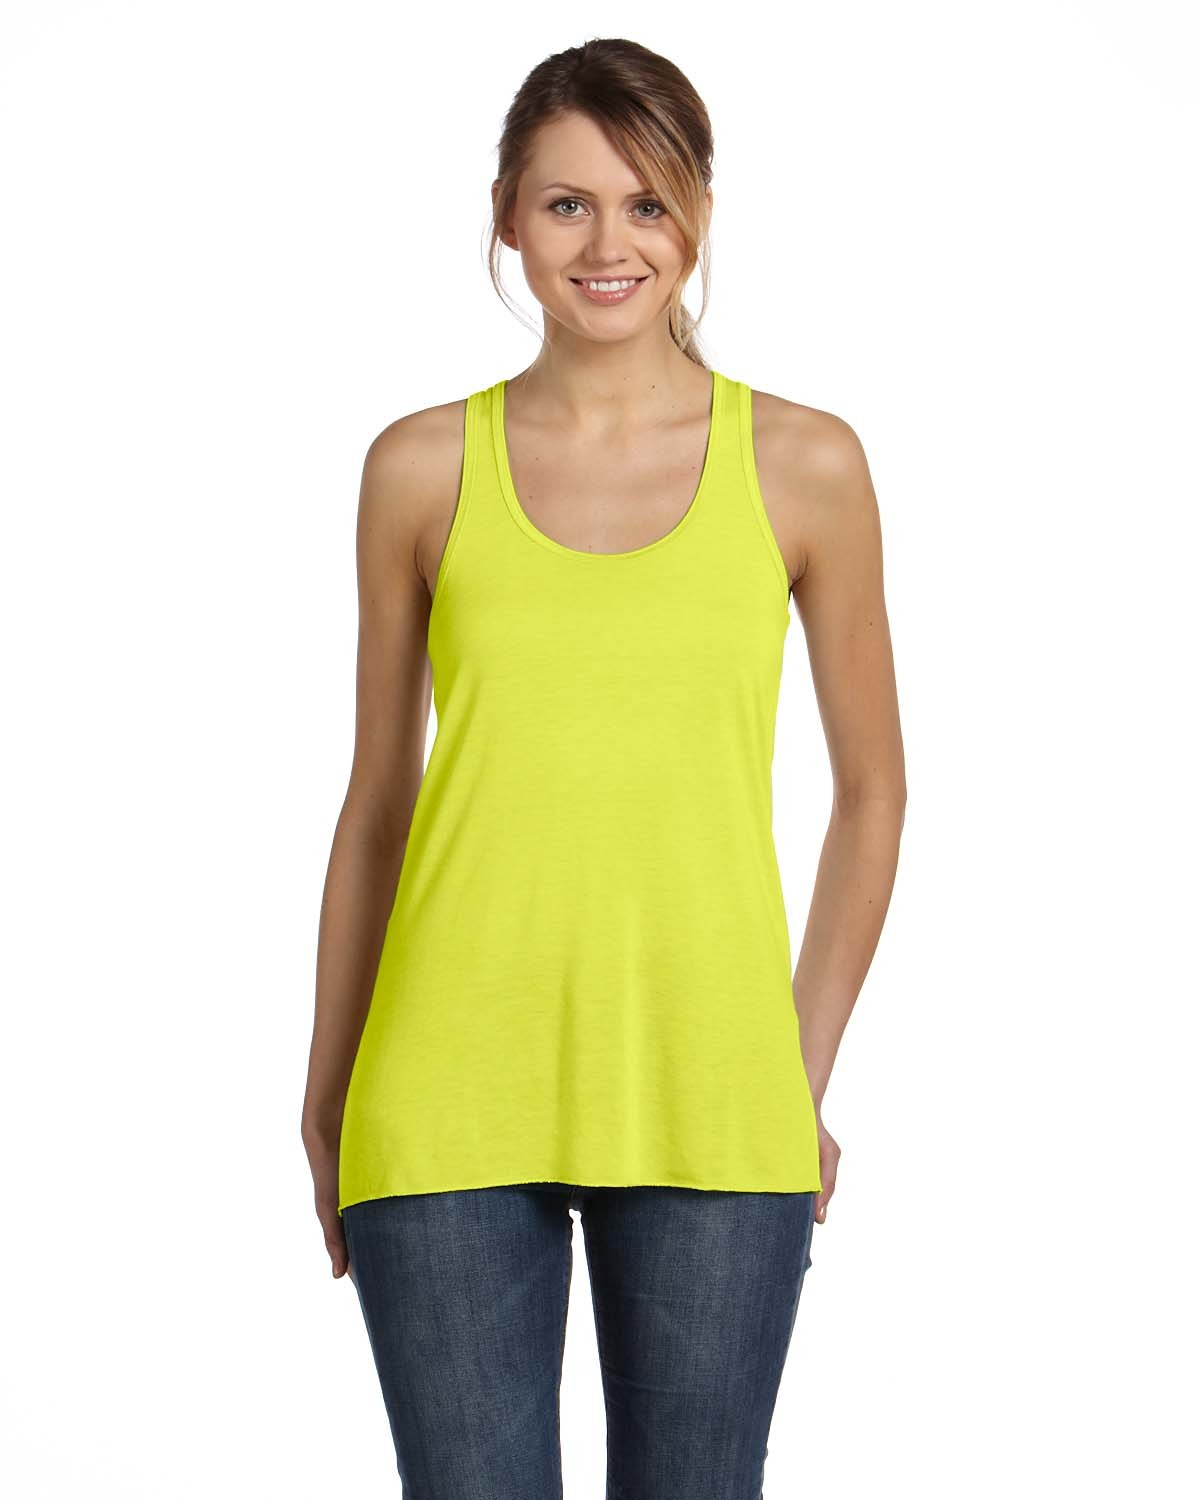 B8800 Bella + Canvas NEON YELLOW